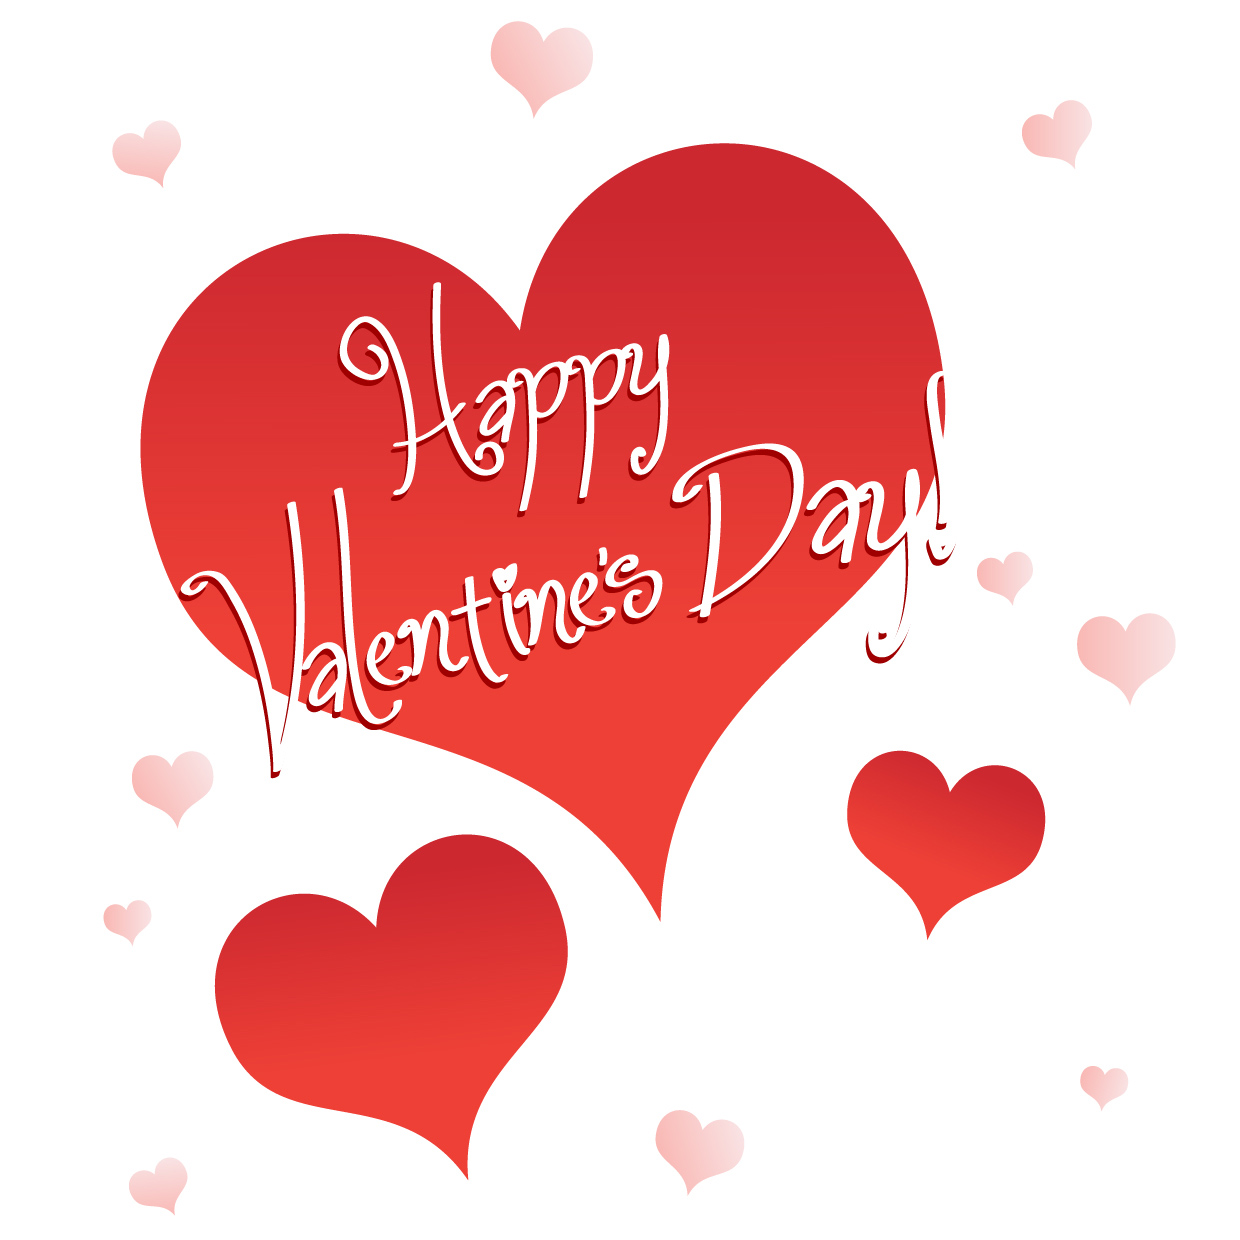 Clipart valentines day clipart vector transparent library Clipart valentines day clipart - ClipartFest vector transparent library